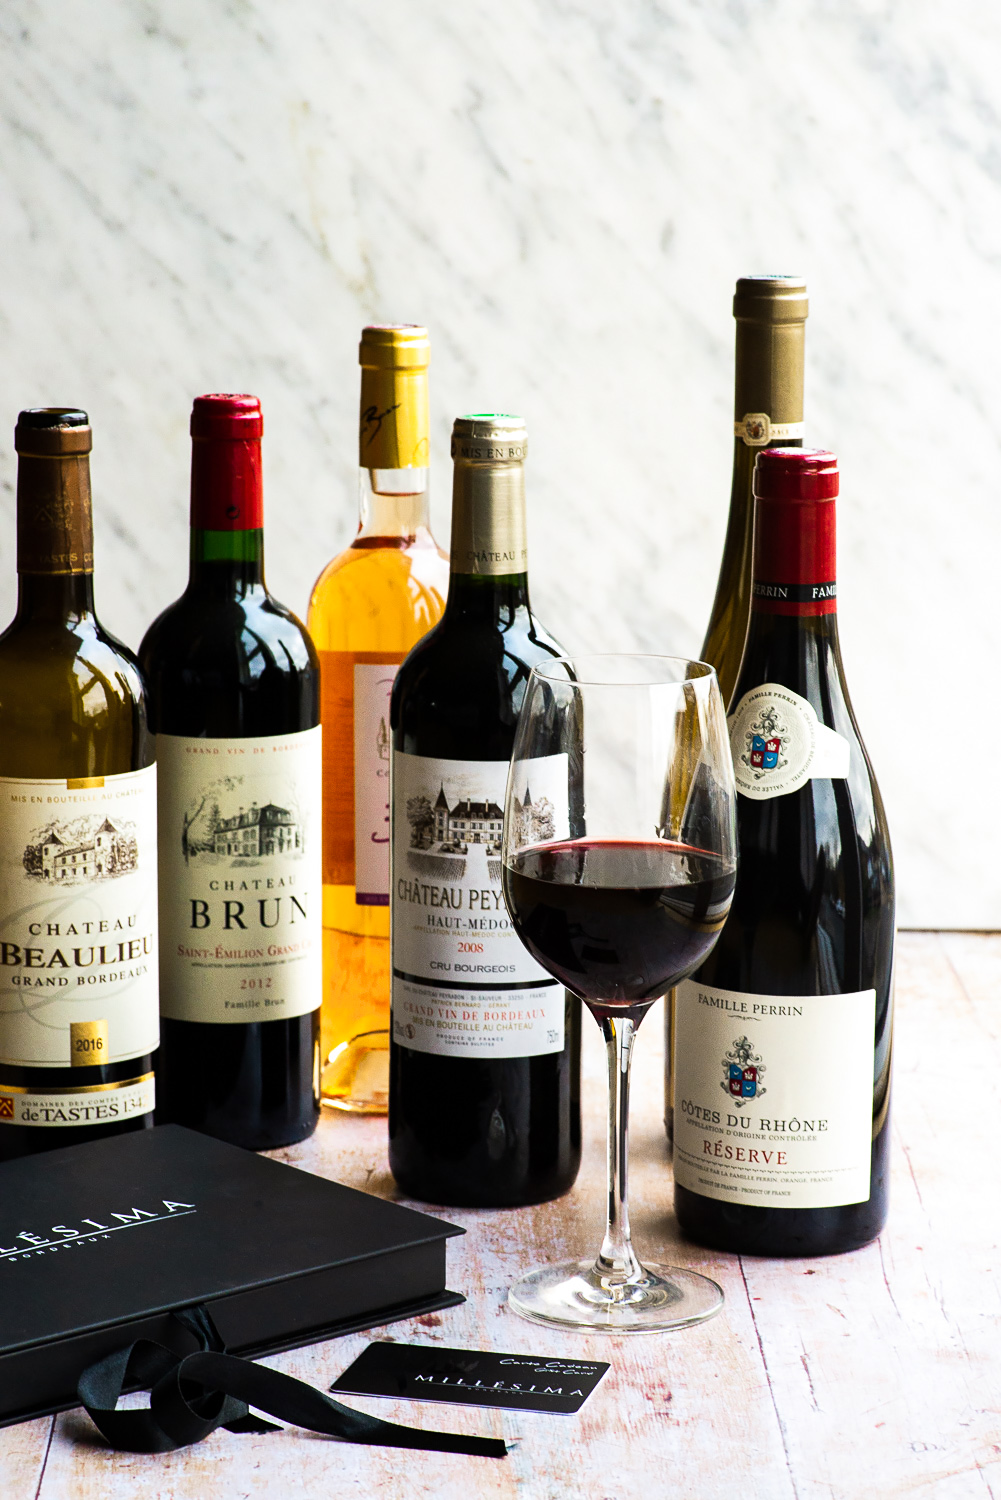 Tasting Case of 6 Wines | Millesima, a Bordeaux-based wine merchant withone of the most comprehensive selections of fines wines from everywhere in the world.